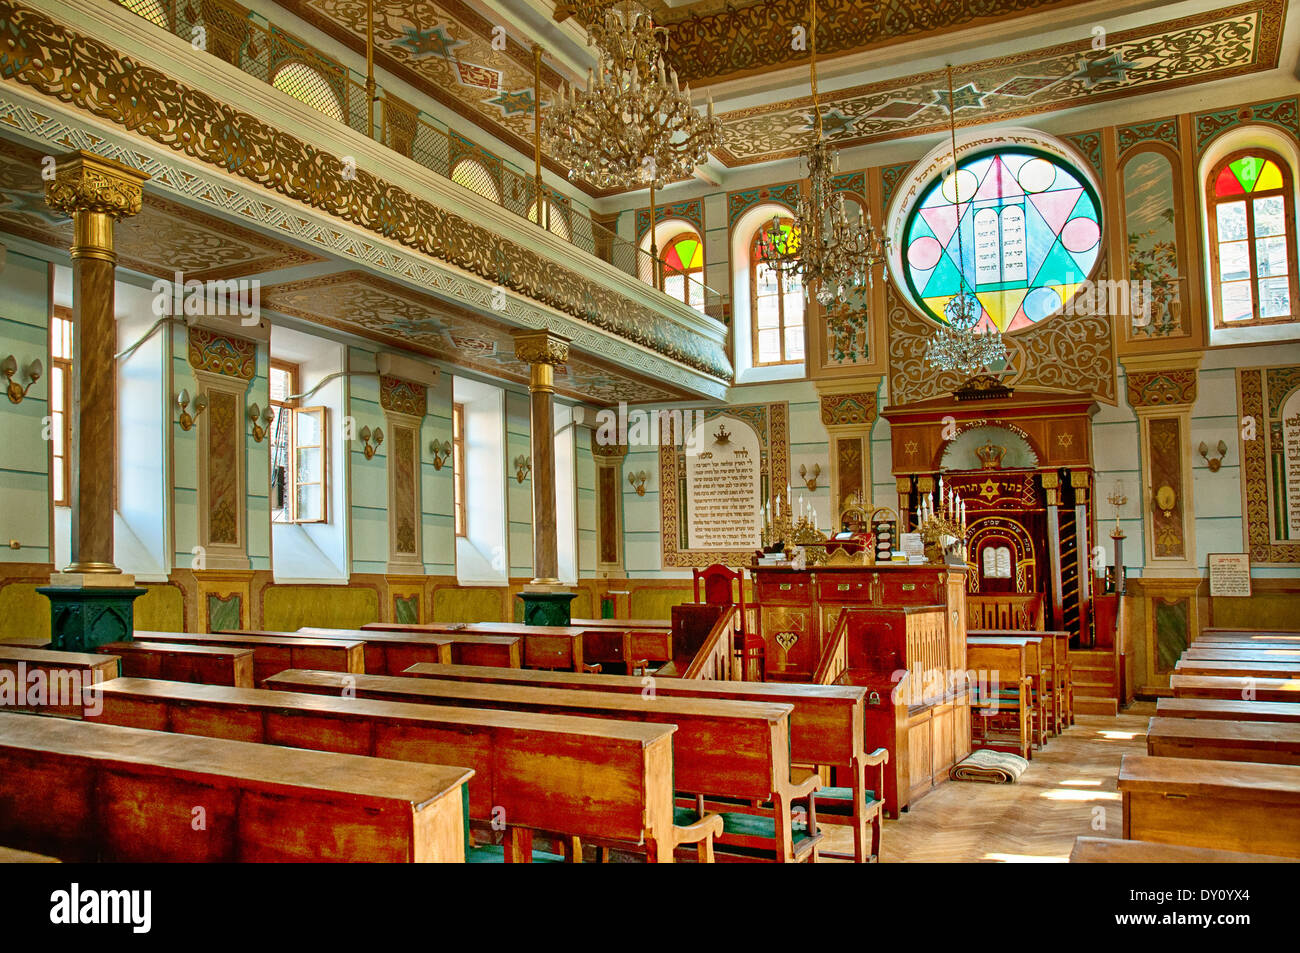 Synagogue interior - Stock Image